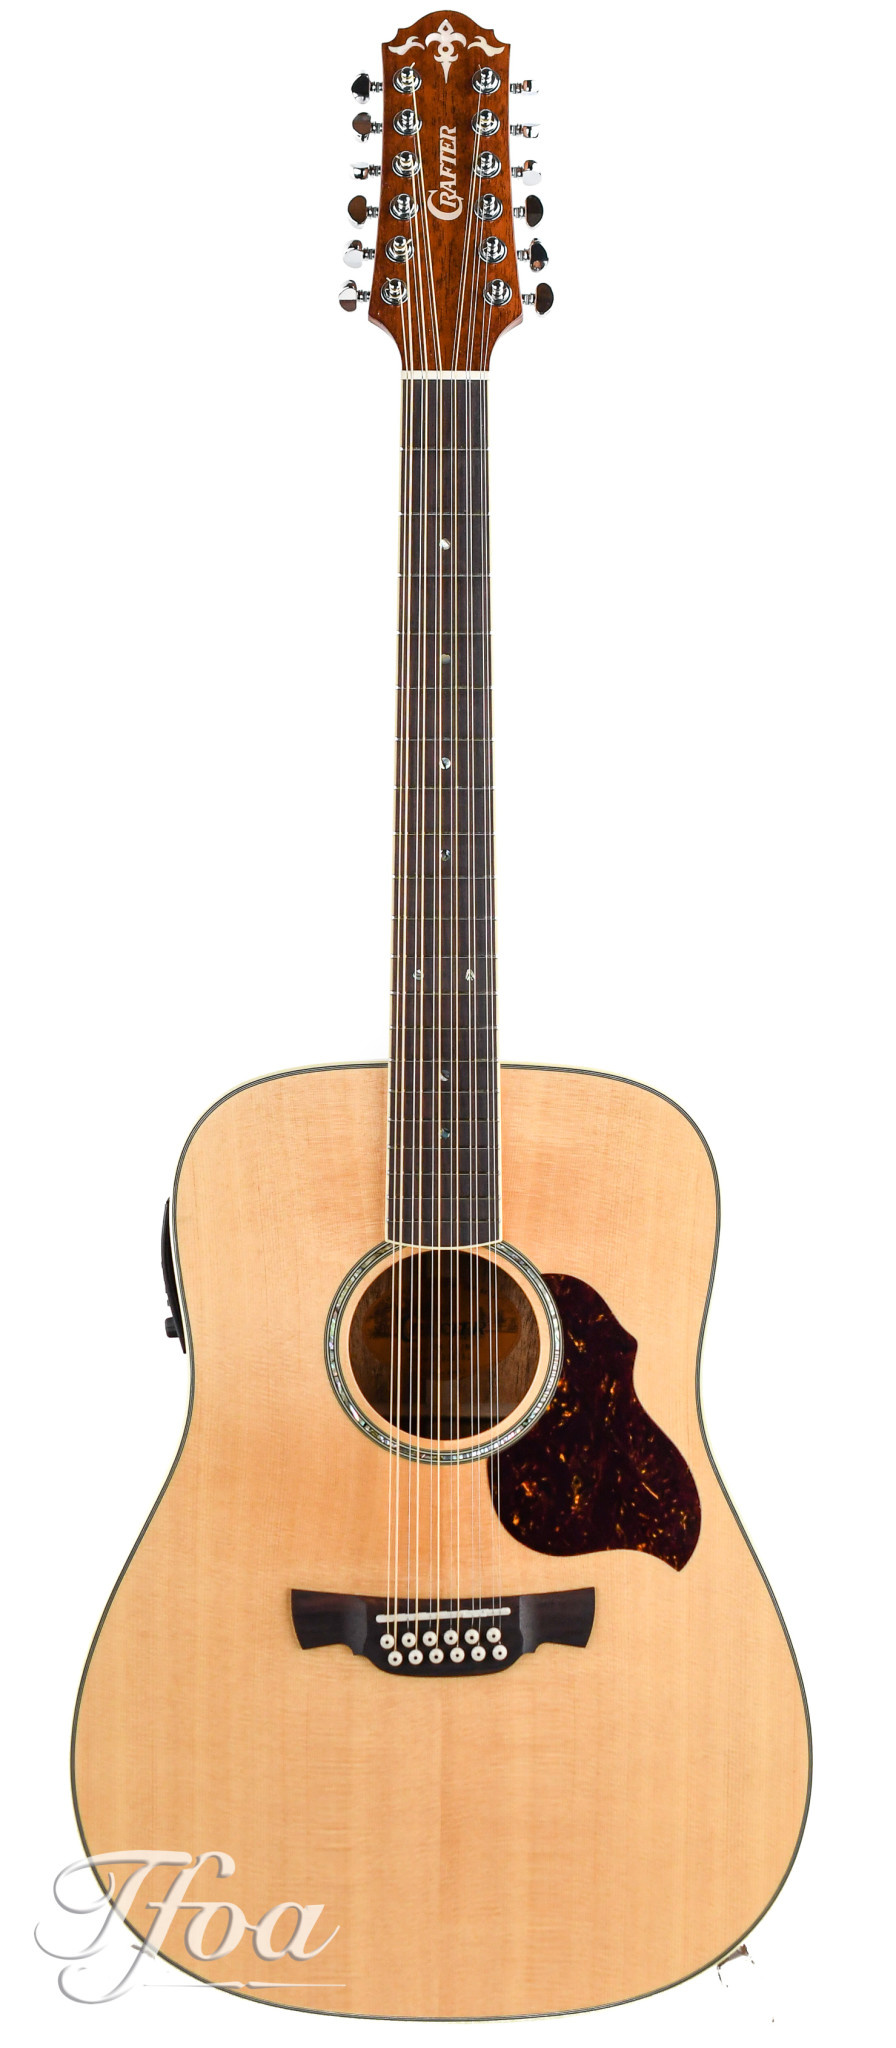 Crafter D8 12N AE 12 String Mahogany Spruce 2016 Near Mint